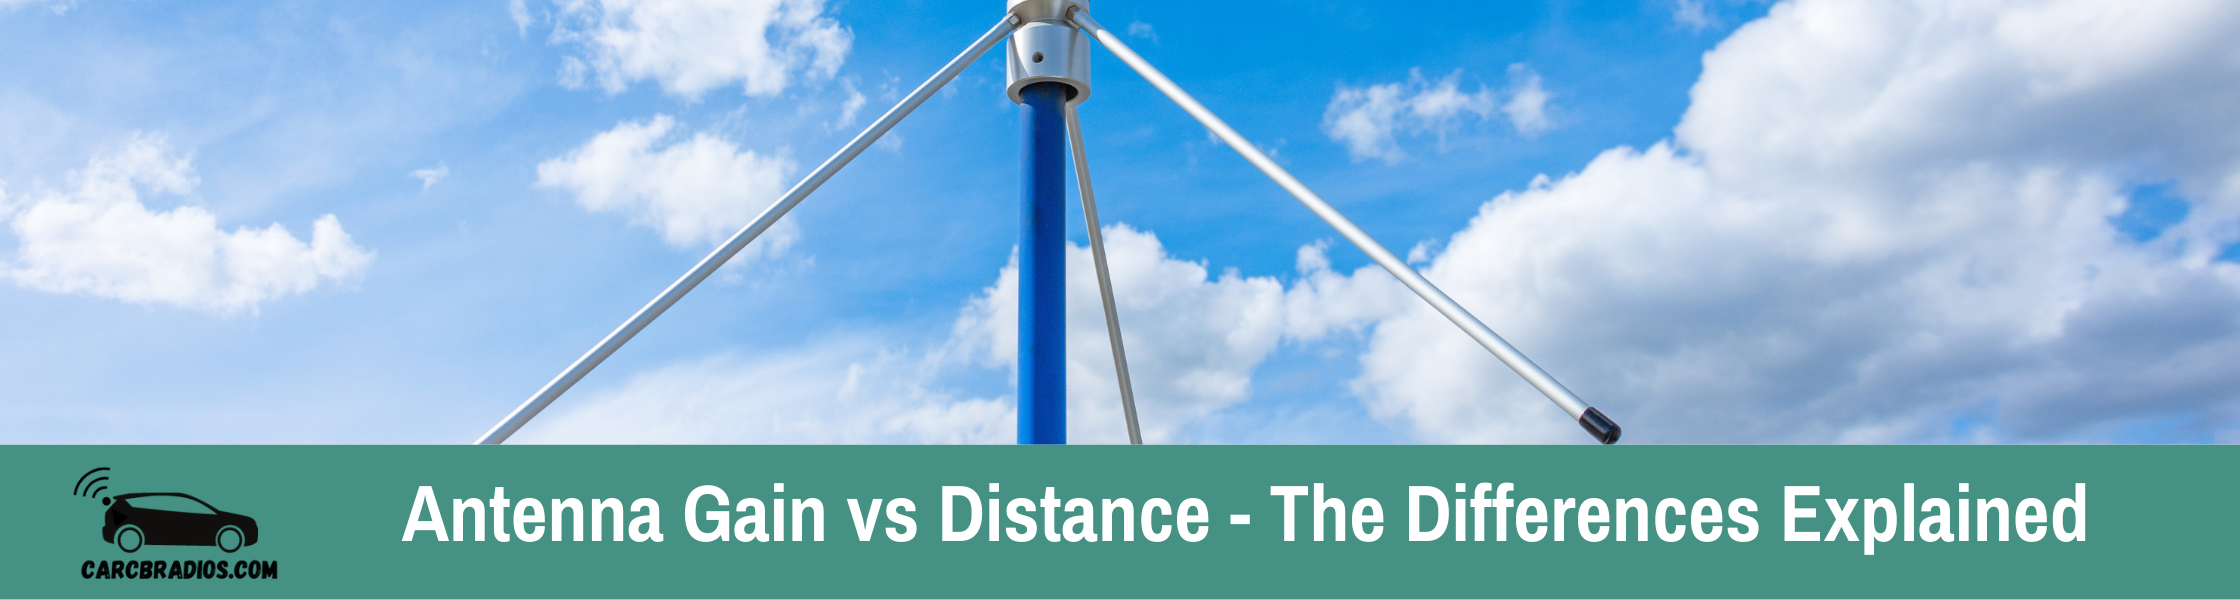 Antenna Gain vs Distance: There is certainly some correlation between distance and gain; however, there are other factors that also play a role in determining an antenna's signal strength at any particular location.